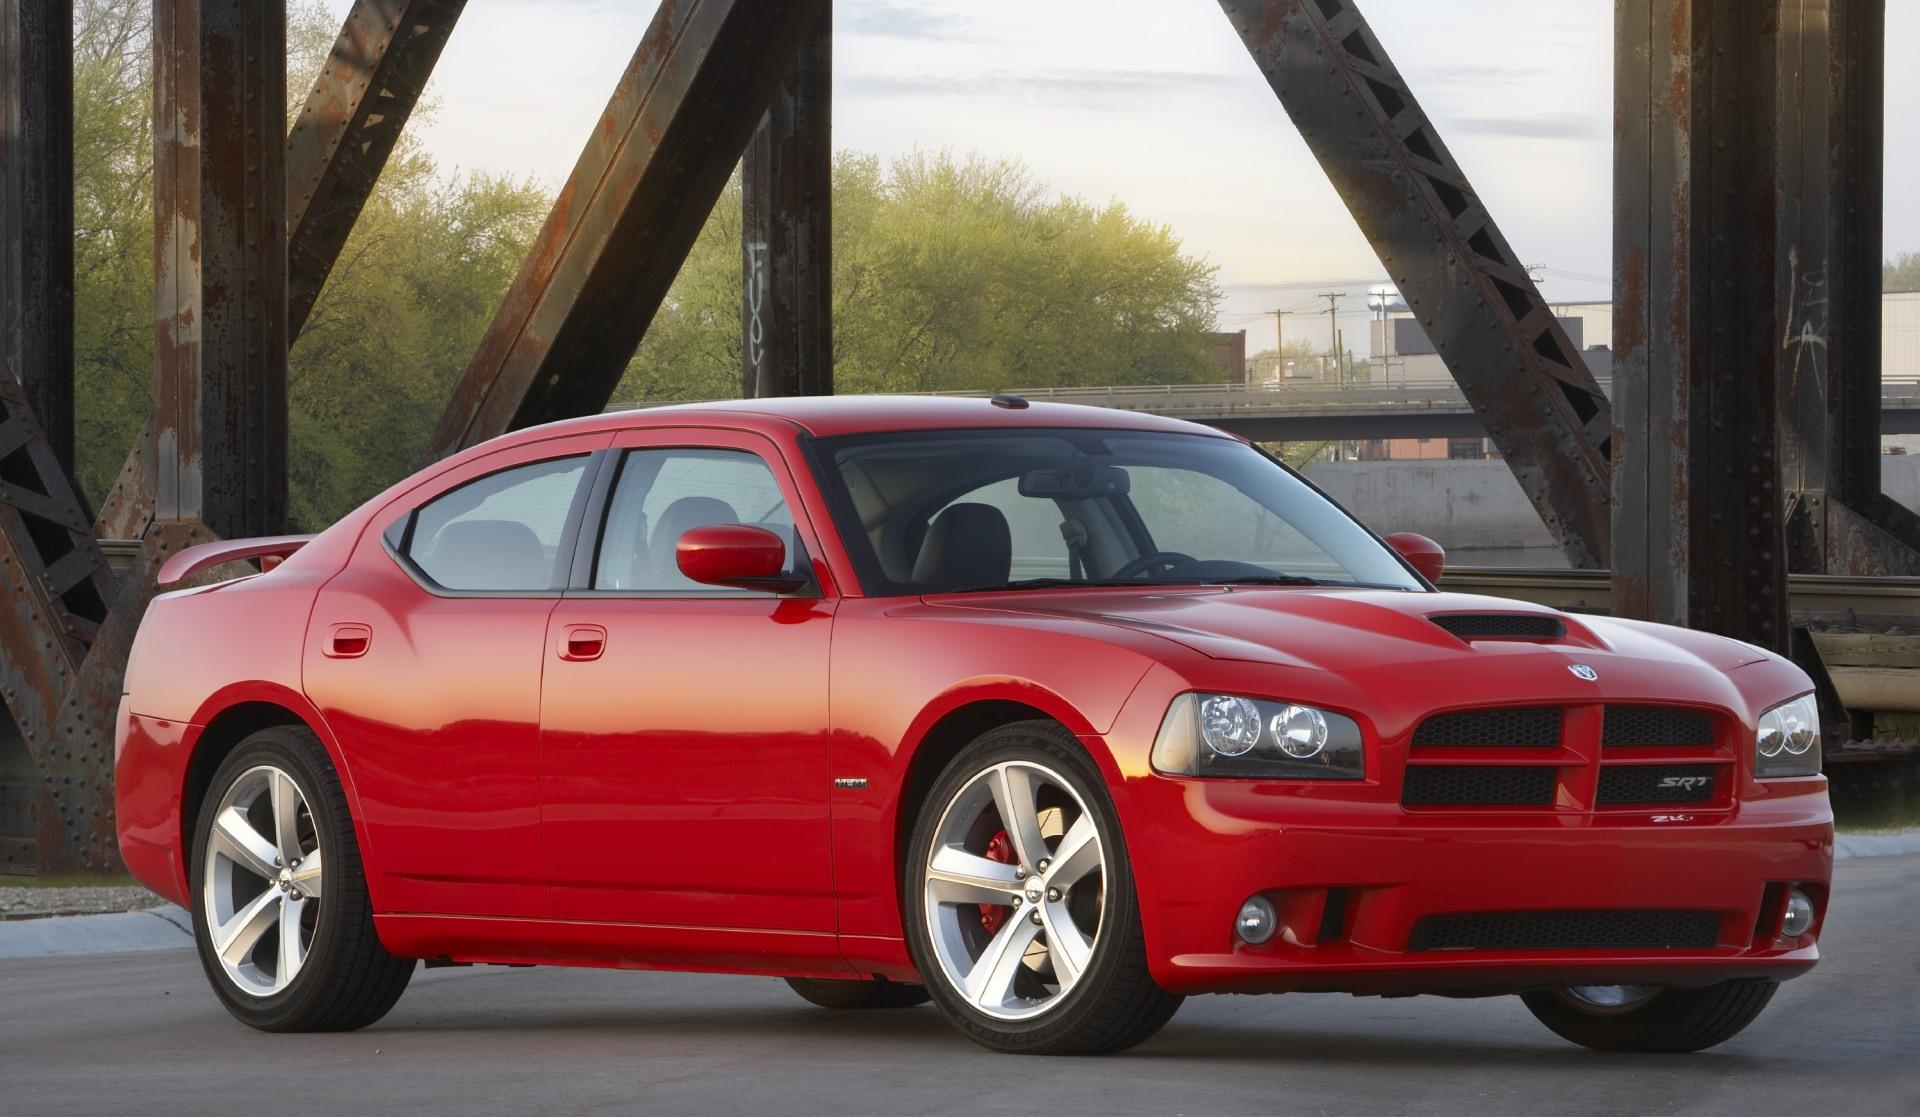 2010 Dodge Charger Srt8 News And Information